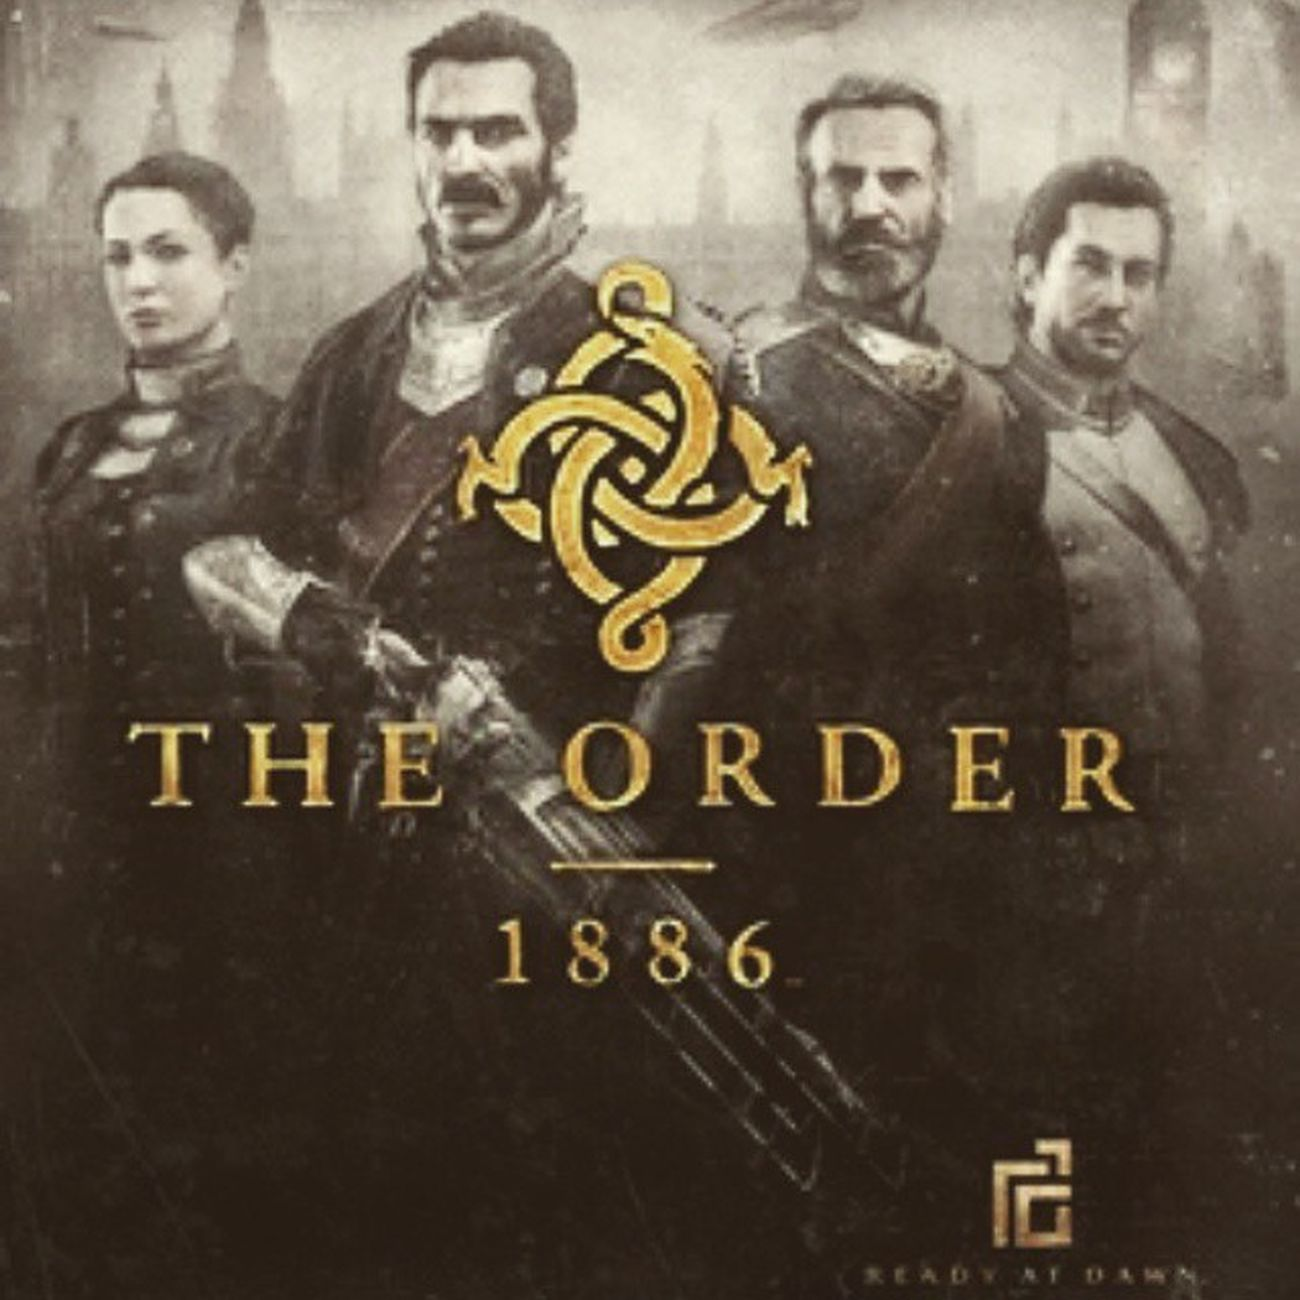 This comes out this week! The Order 1886 PS4 Title Only Is it worth getting? No online.. Completion time from 5-7 hours gameplay but! The best visuals bar far of any game ever made for console! Only problem.. Its £49 to complete then eventually trade in... Hmm.... Theorder1886 PS4 Nextgen 1080p 60fps elgatogamecapture elgatohd elgatohd60 scotland glasgow TheScottishTrooper minecraft gtav gtaonline cod callofduty nextgengaming retrogaming gamerguy gamer geek youtube youtuber money psn